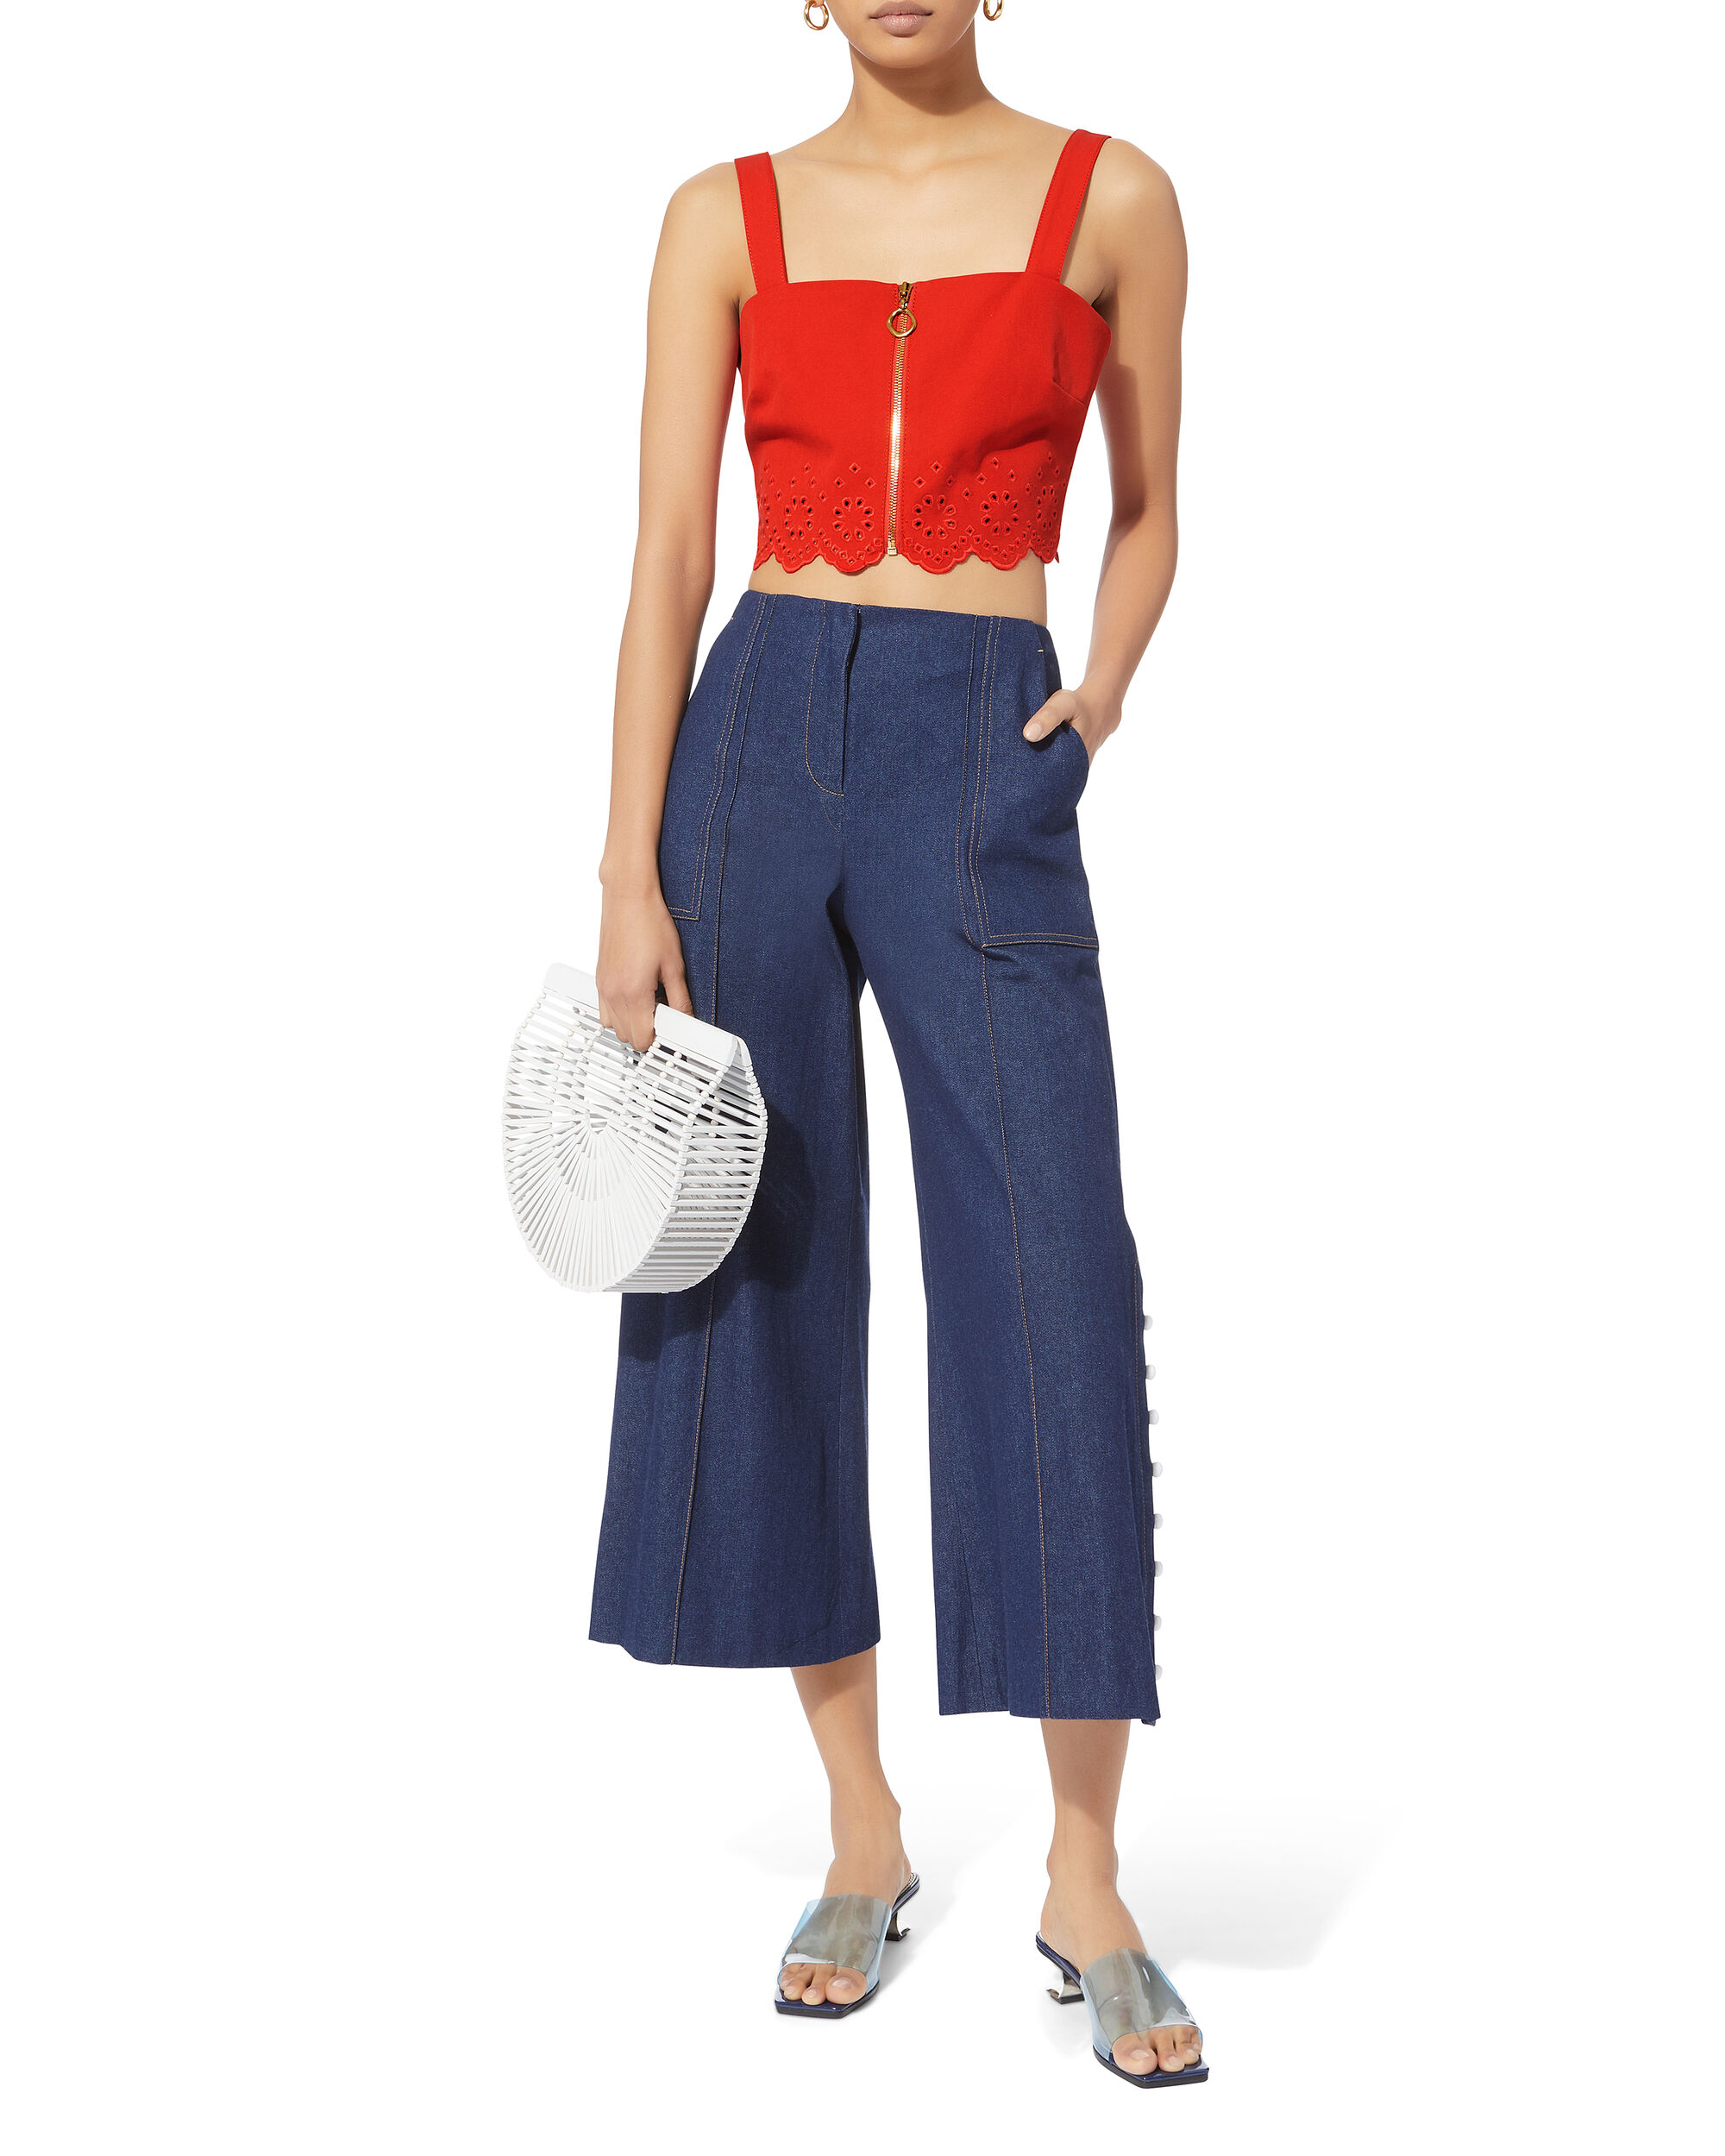 Red Eyelet Crop Top, RED, hi-res